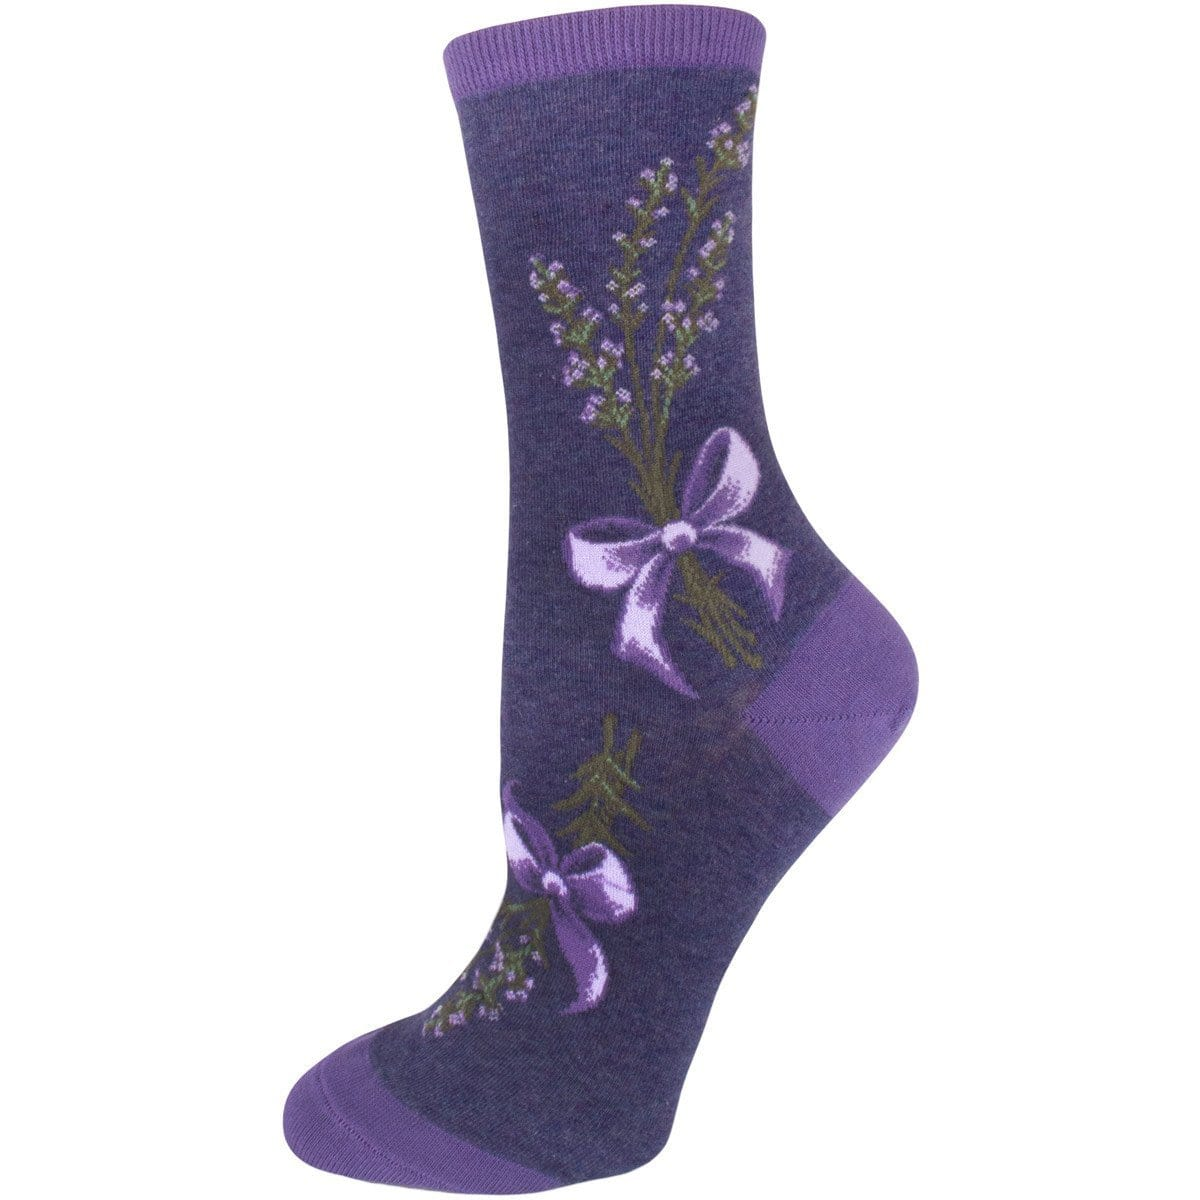 Lavender Harvest Socks